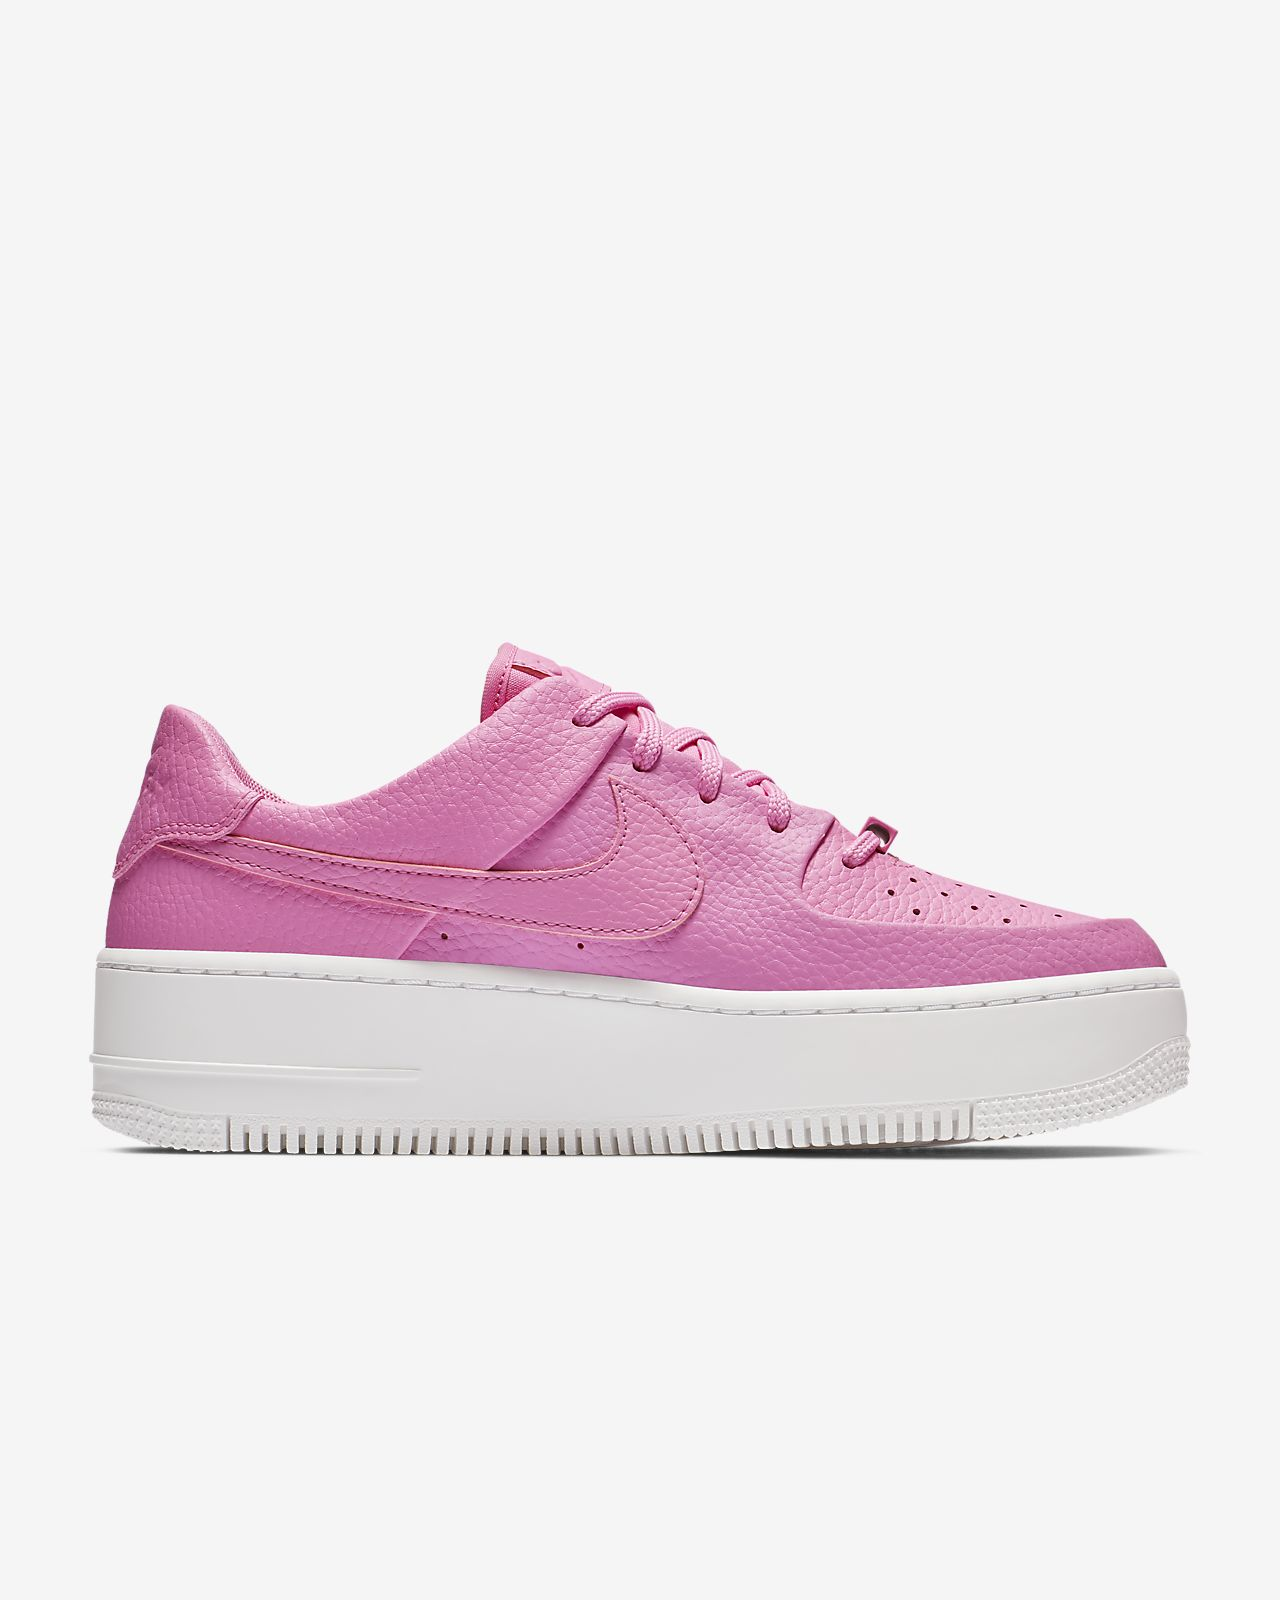 04c4f0c7f6 Nike Air Force 1 Sage Low Women's Shoe. Nike.com CH